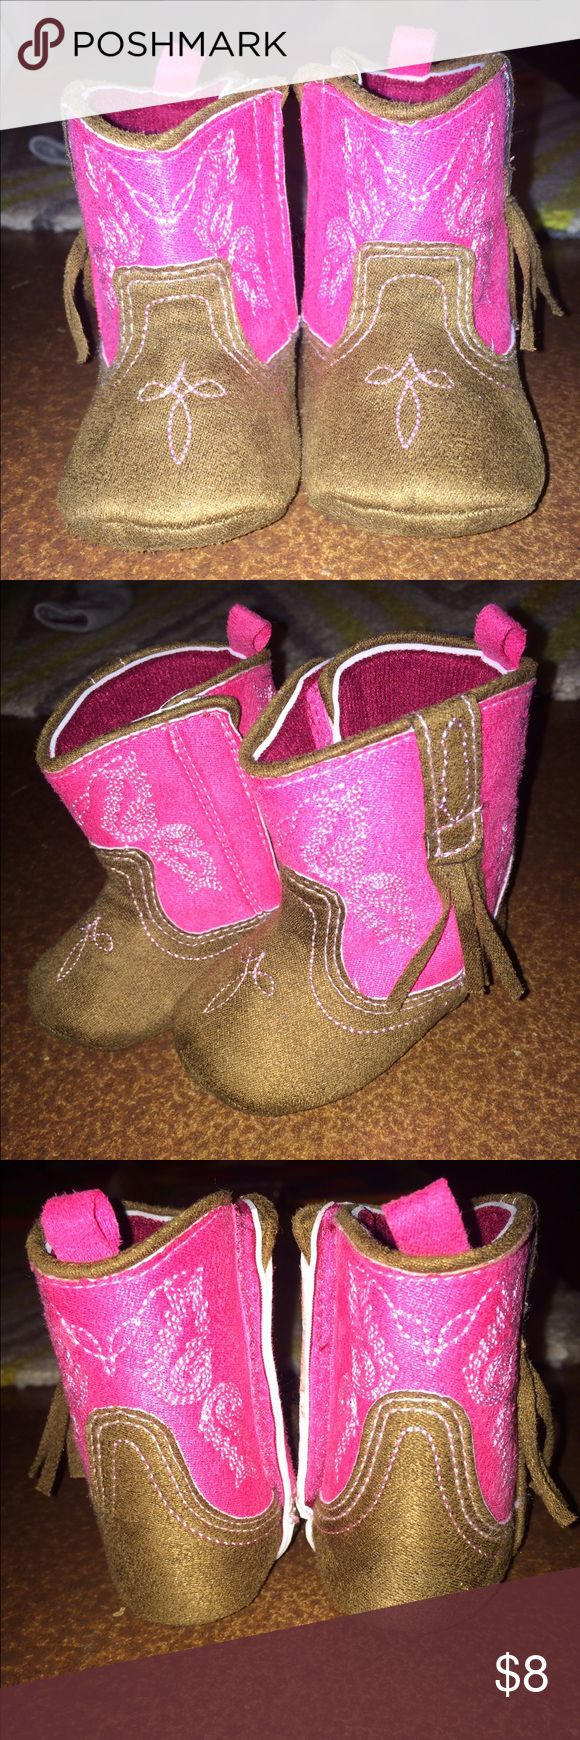 Baby Girl Cowgirl Boots Pink and brown infant cowgirl booties - 6-9 Months - Worn only once!! Rising Star Shoes Baby & Walker